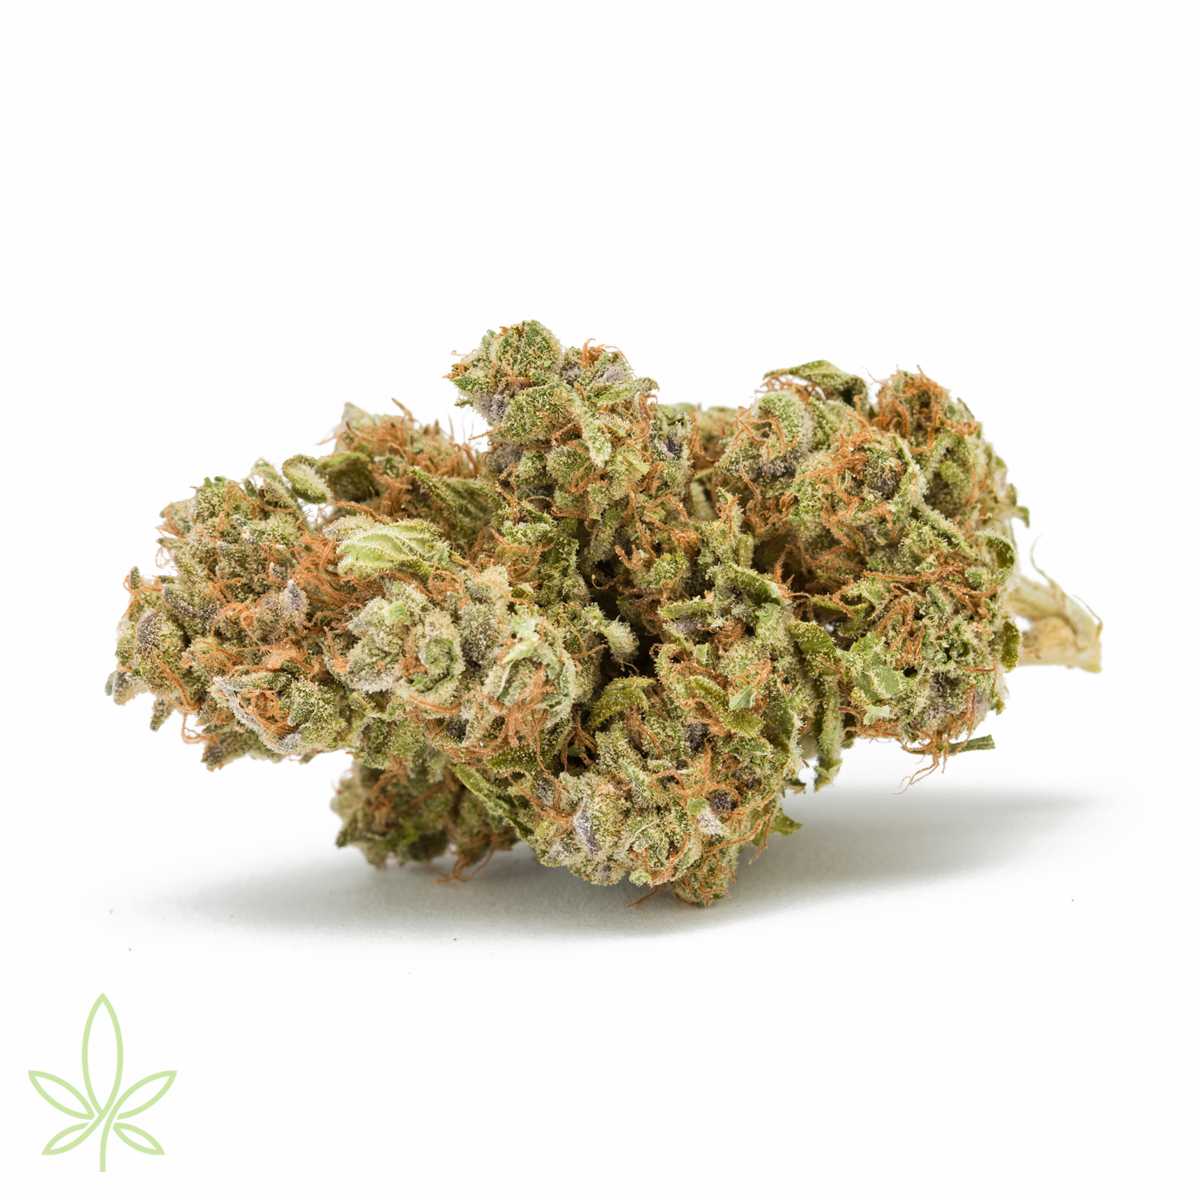 MOB-Mother-of-berries-cannabis-clones-maine-for-sale-3